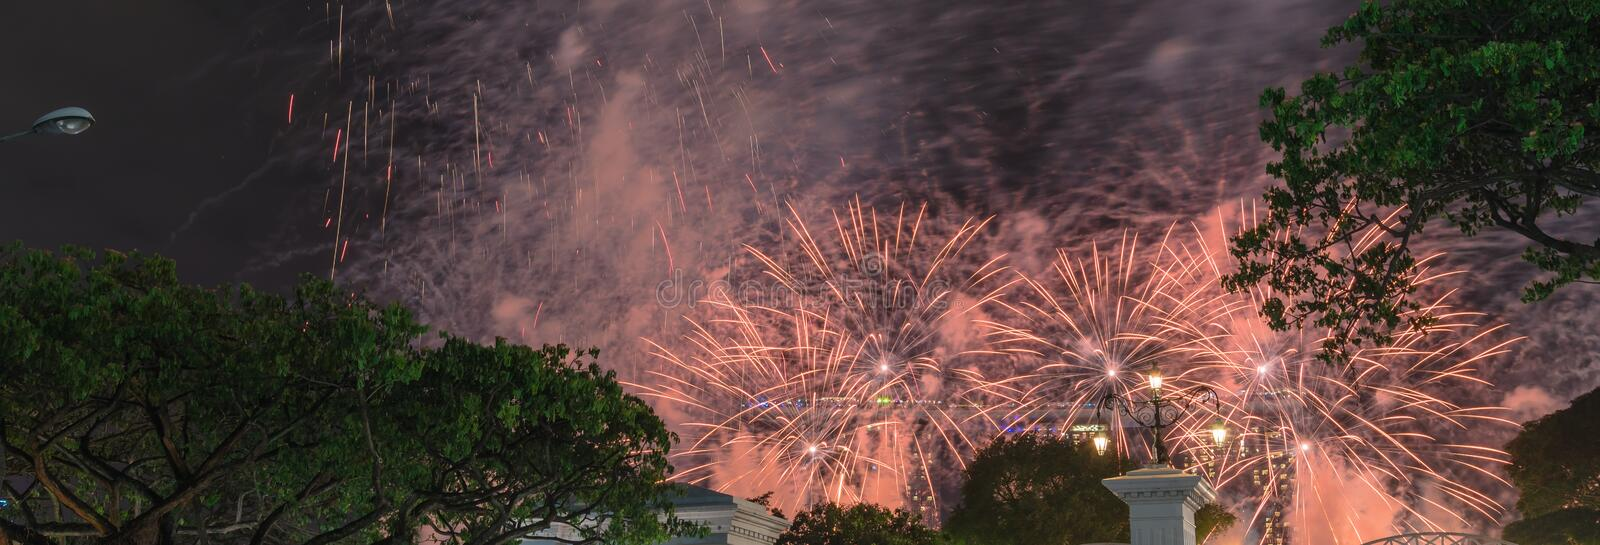 Panoramic firework display celebrating New Year party in downtown Singapore royalty free stock photos